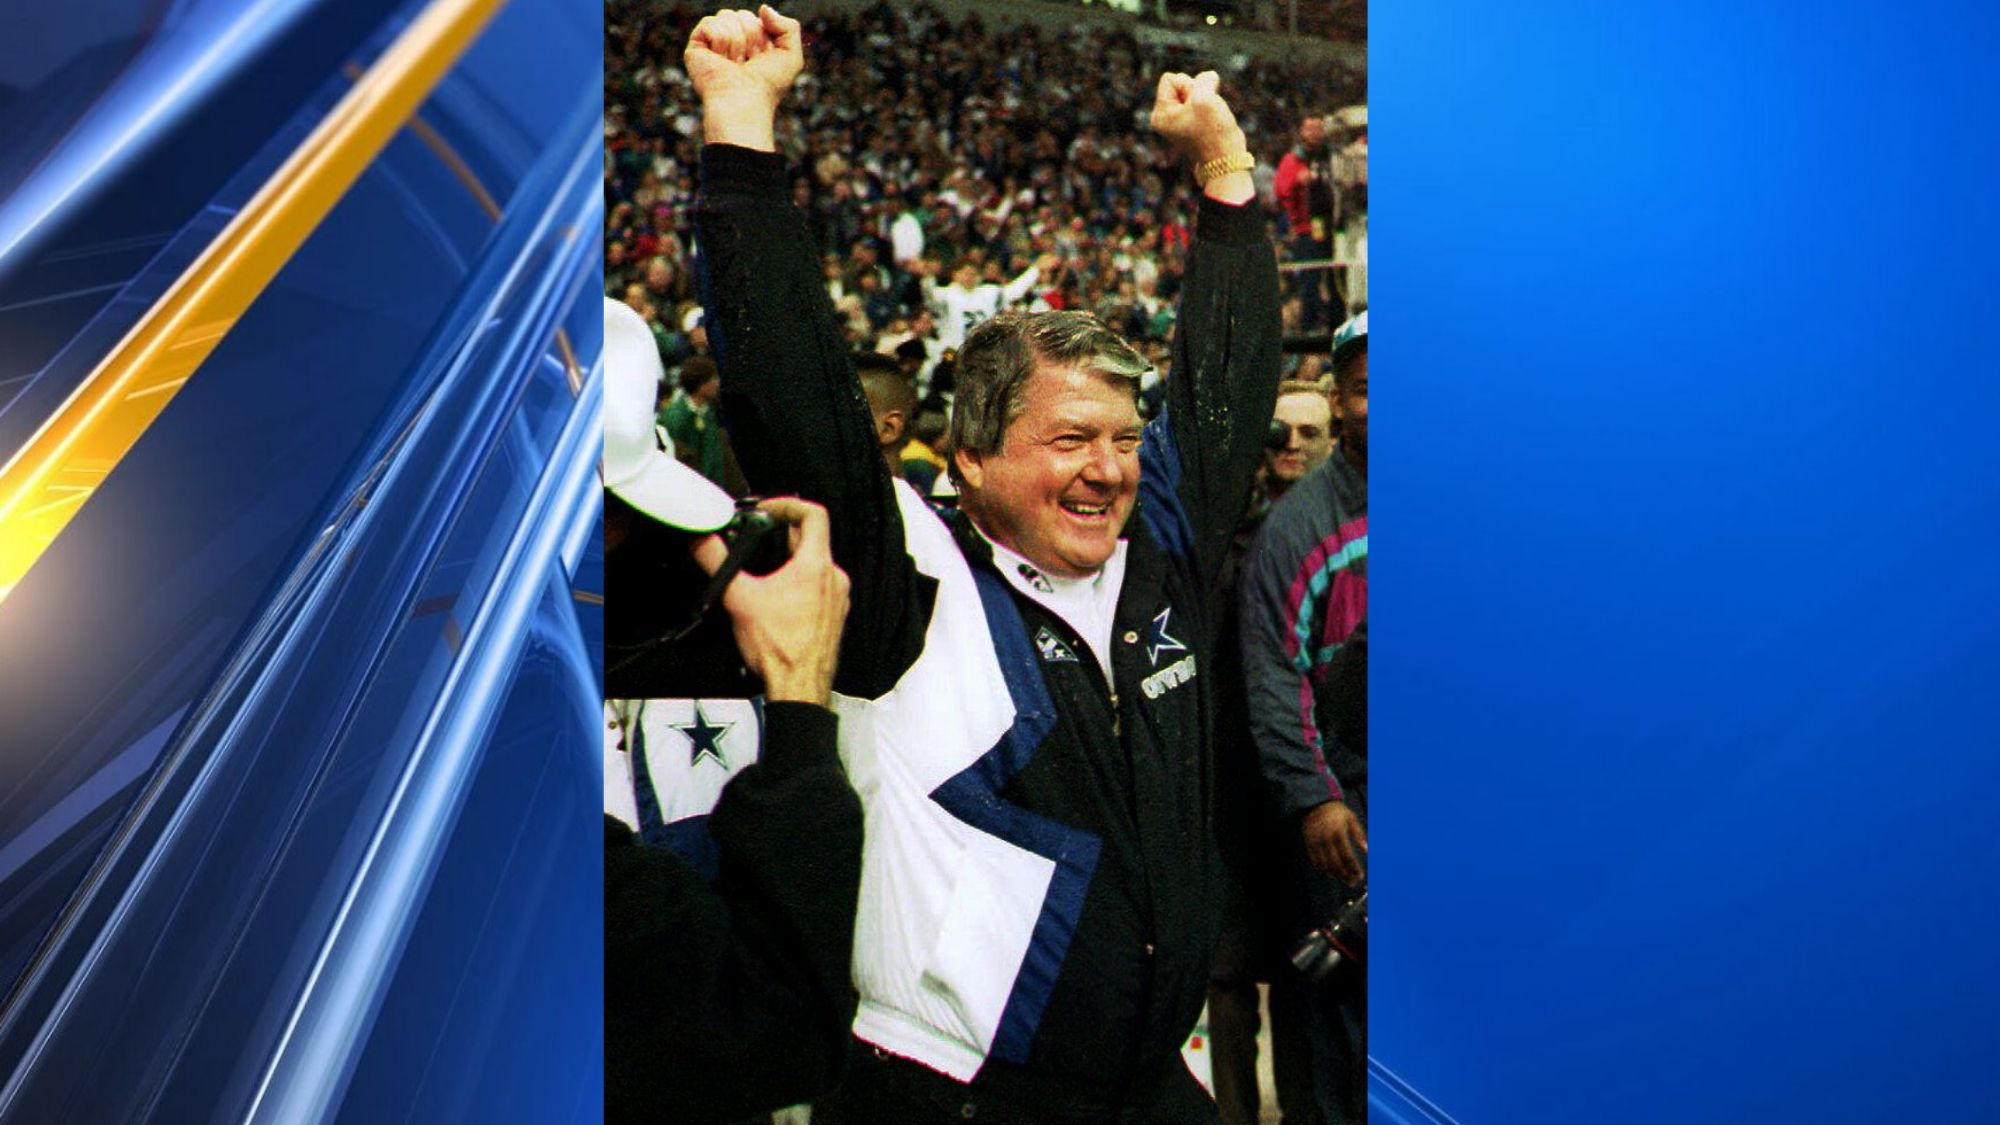 Super Bowl Winning Coach Jimmy Johnson Joins Hall Of Fame